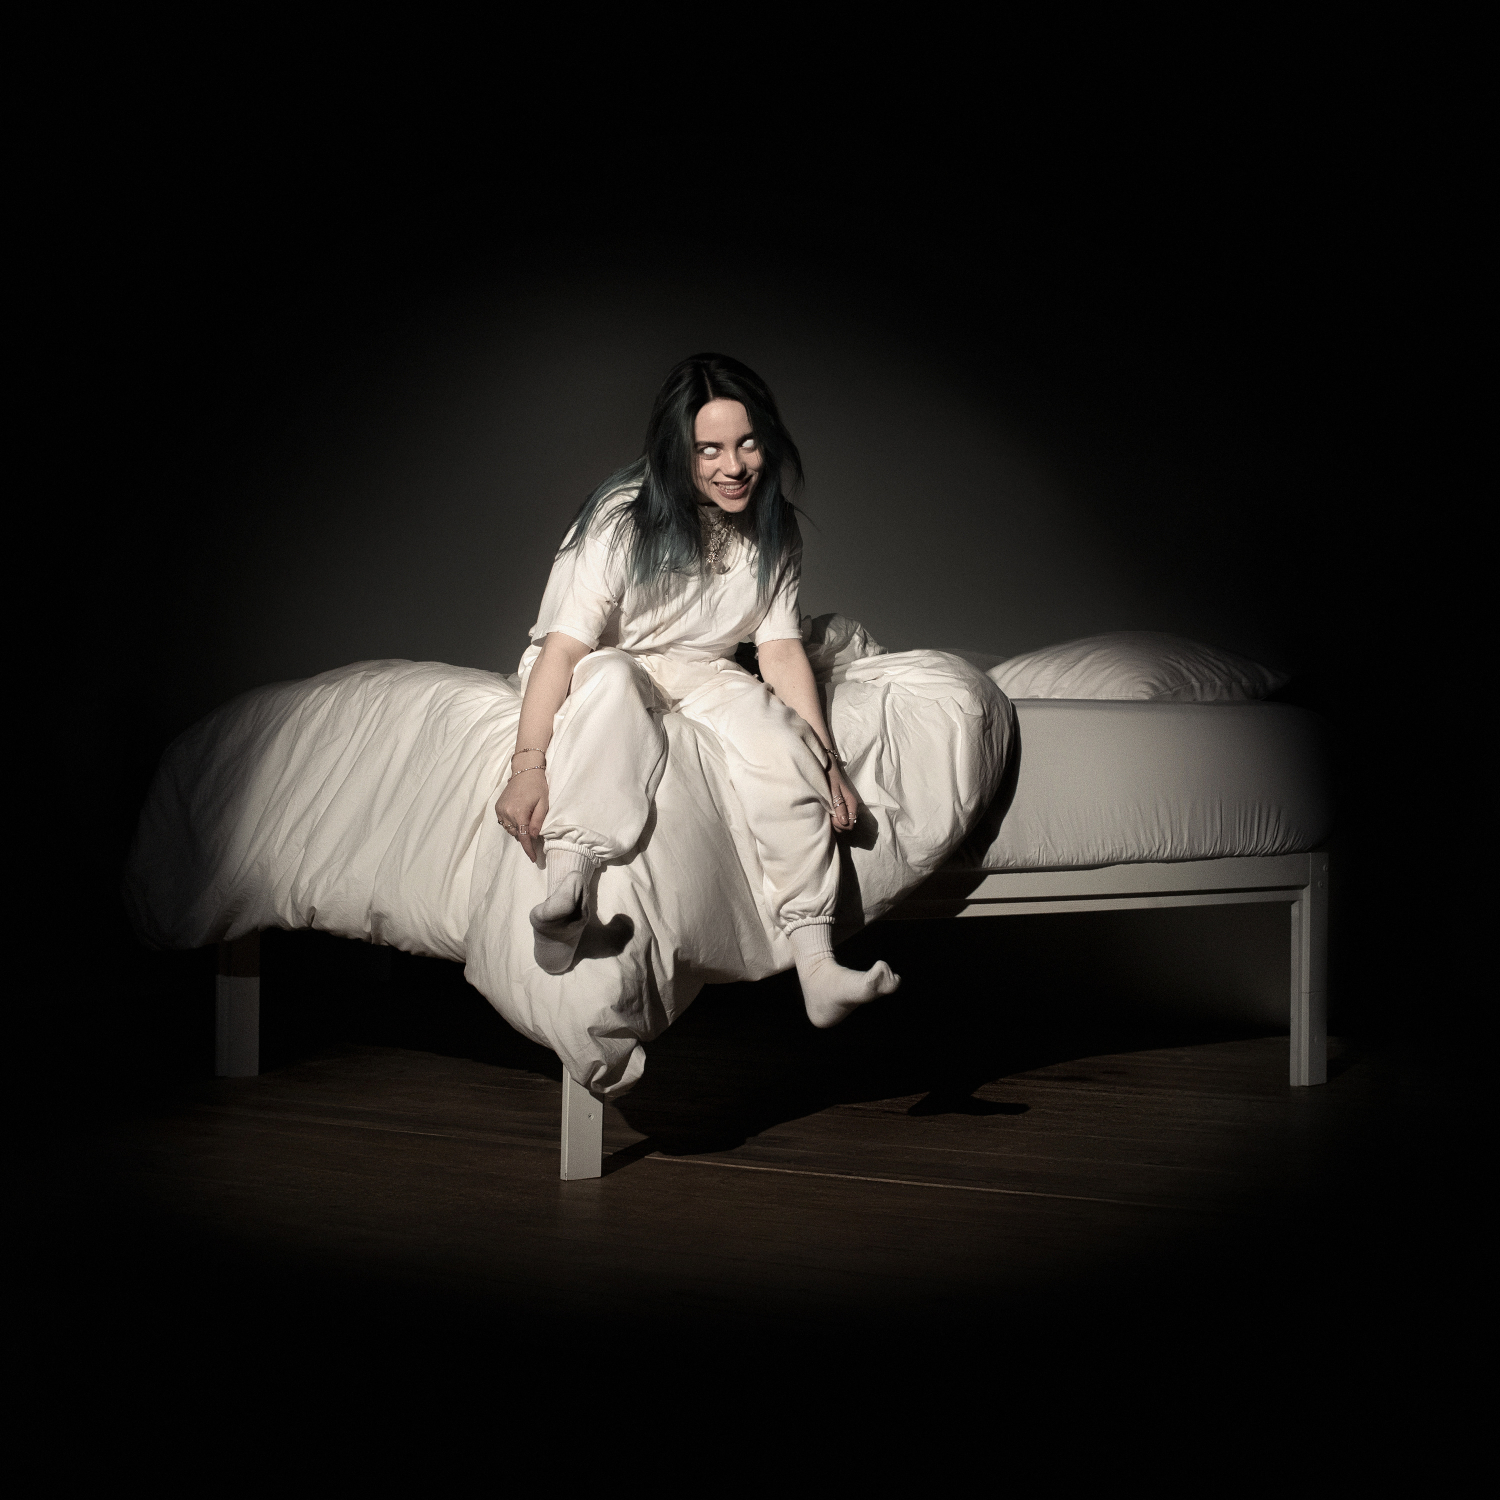 Full Albums: Billie Eilish's 'When We All Fall Asleep, Where Do We Go?'